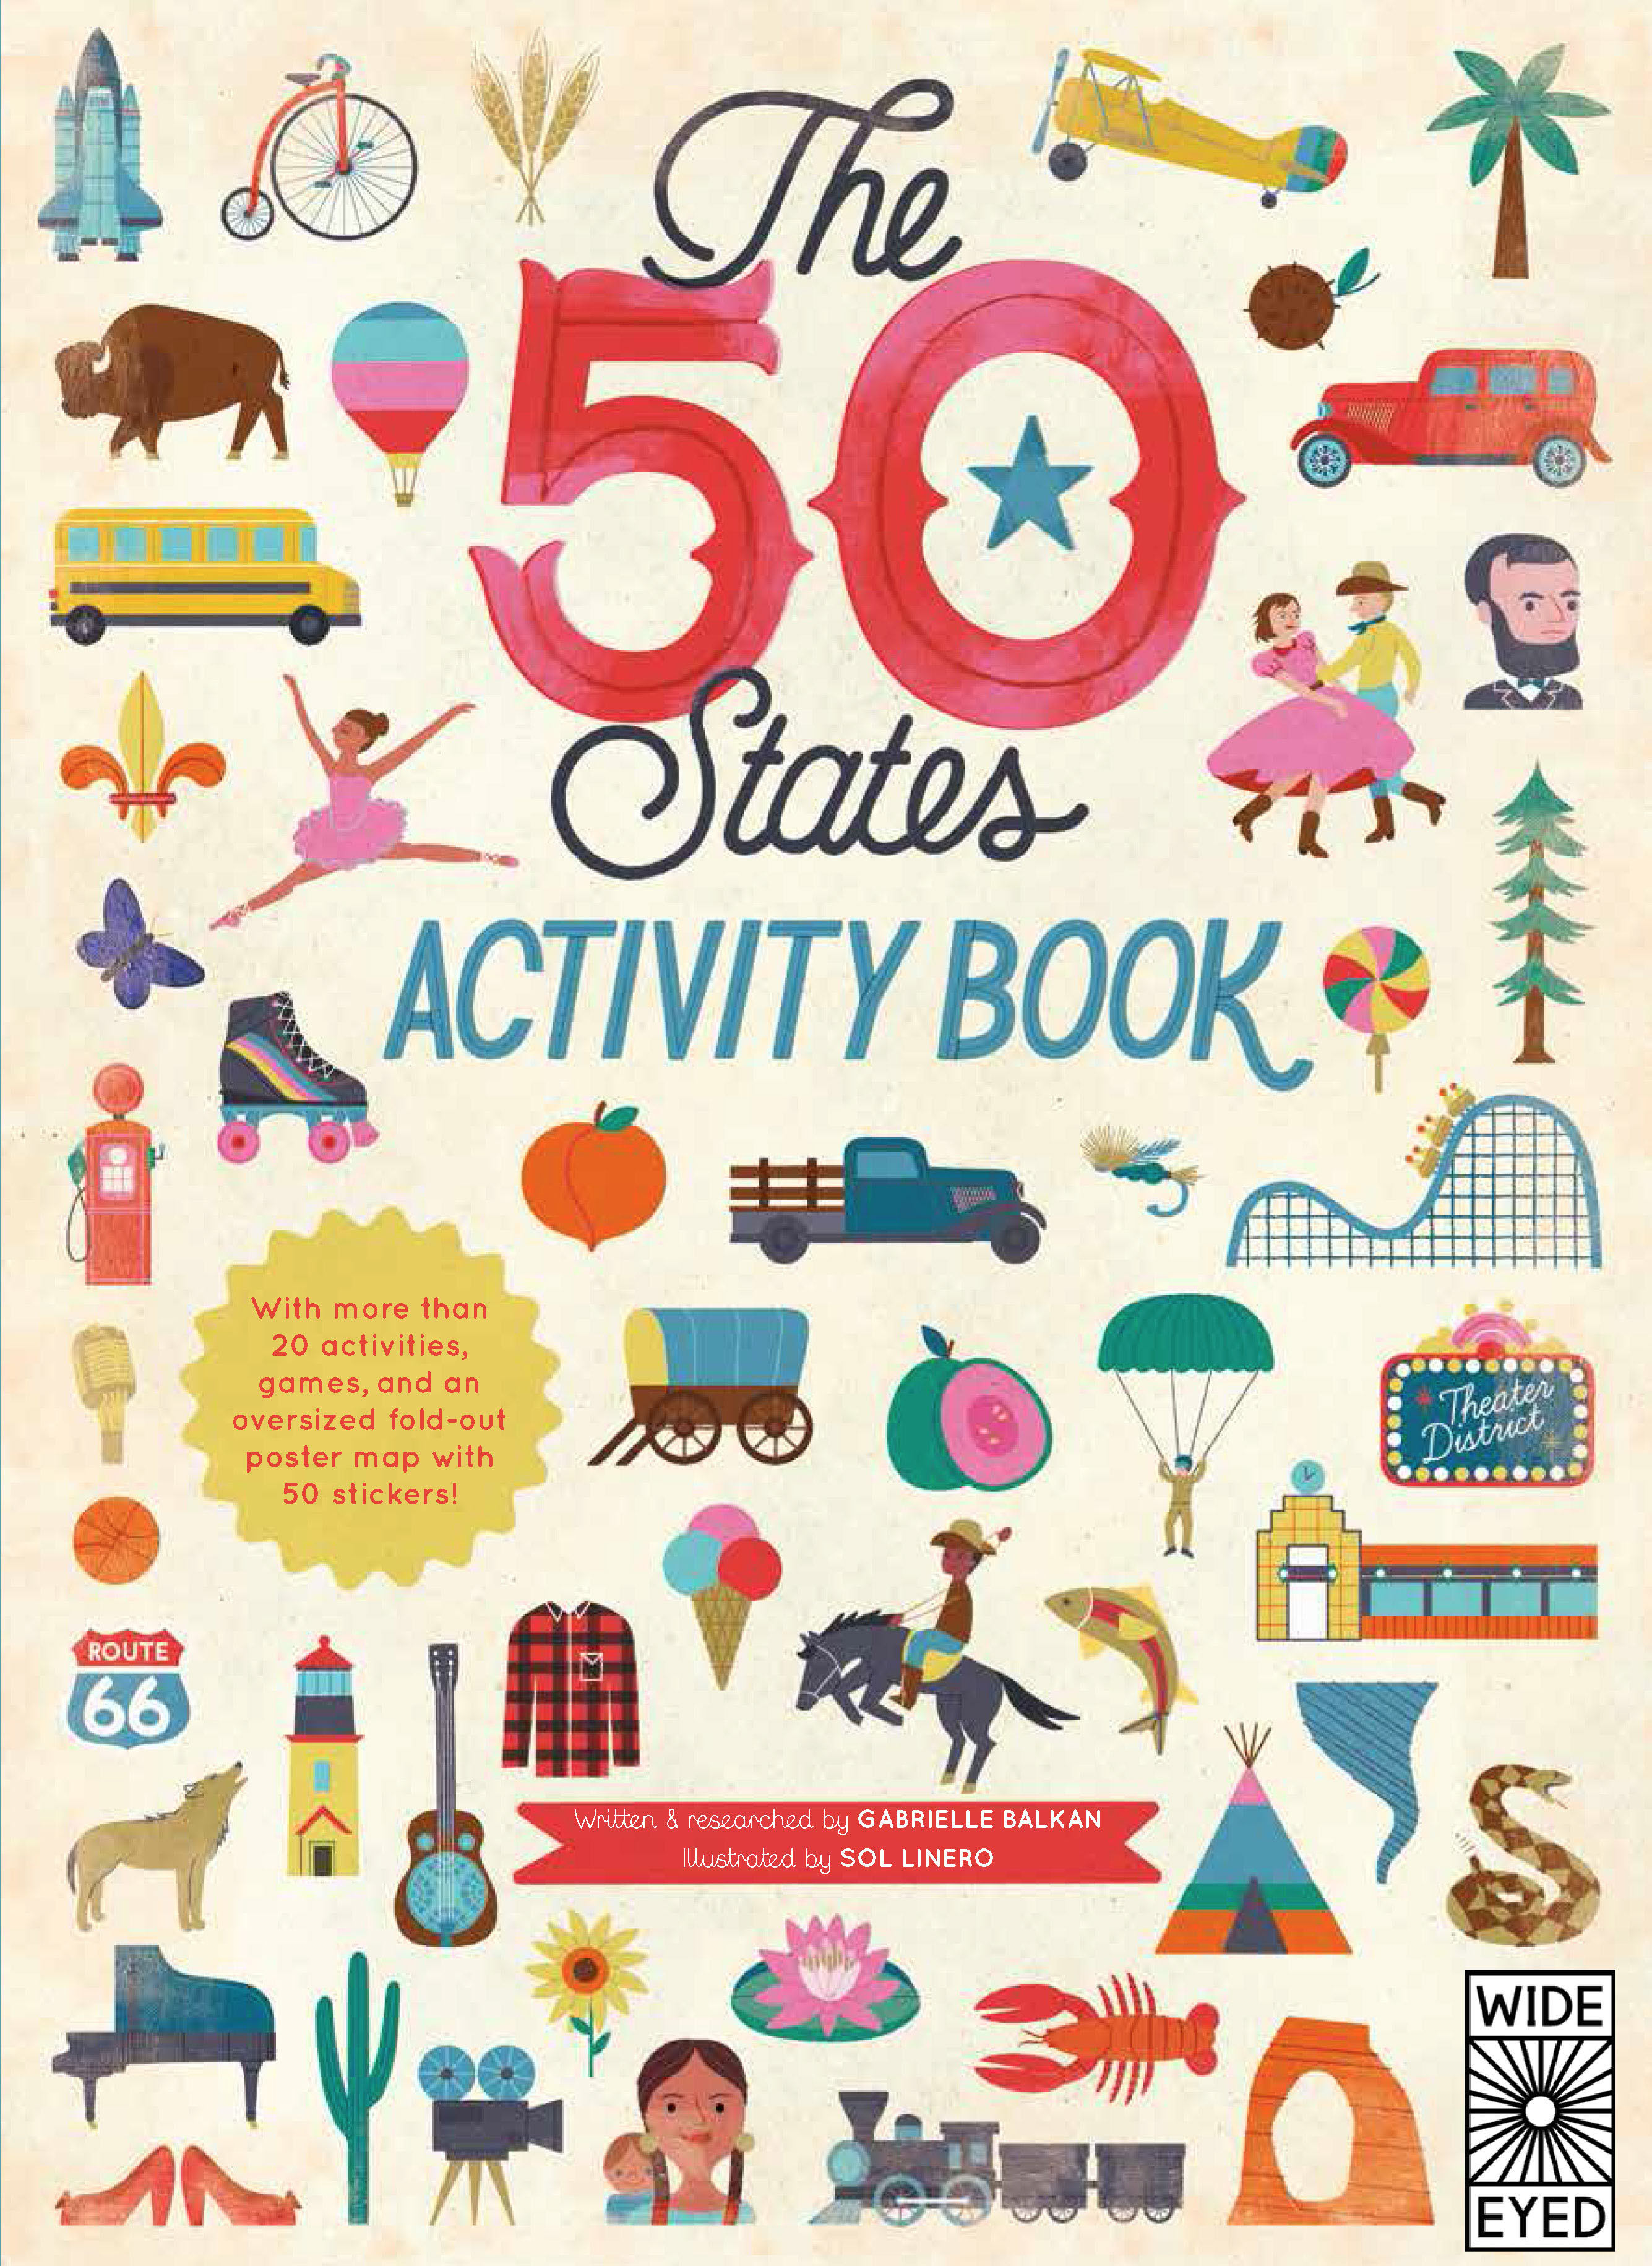 THE 50 STATES: ACTIVITY BOOK : MAPS OF THE 50 STATES OF THE USA